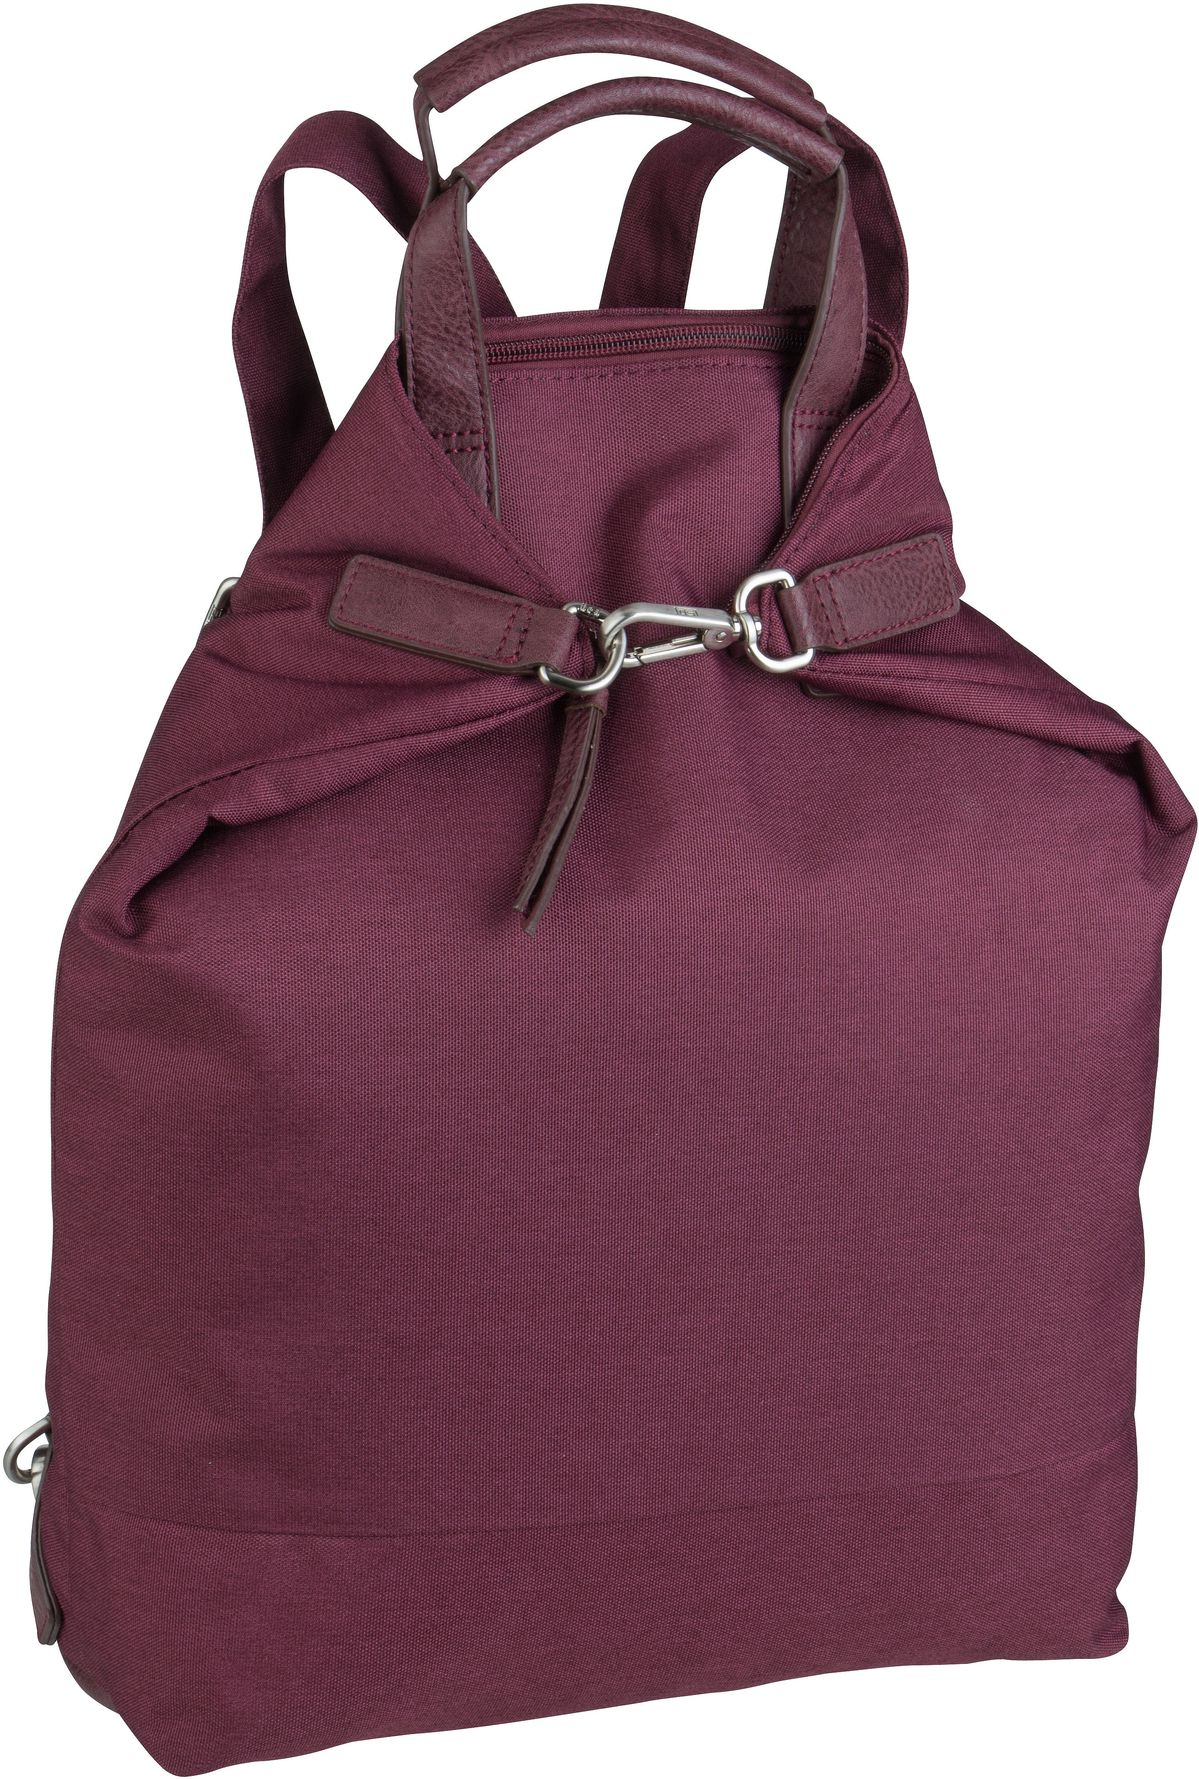 Jost Laptoprucksack 1127 X-Change Bag S Bordeaux